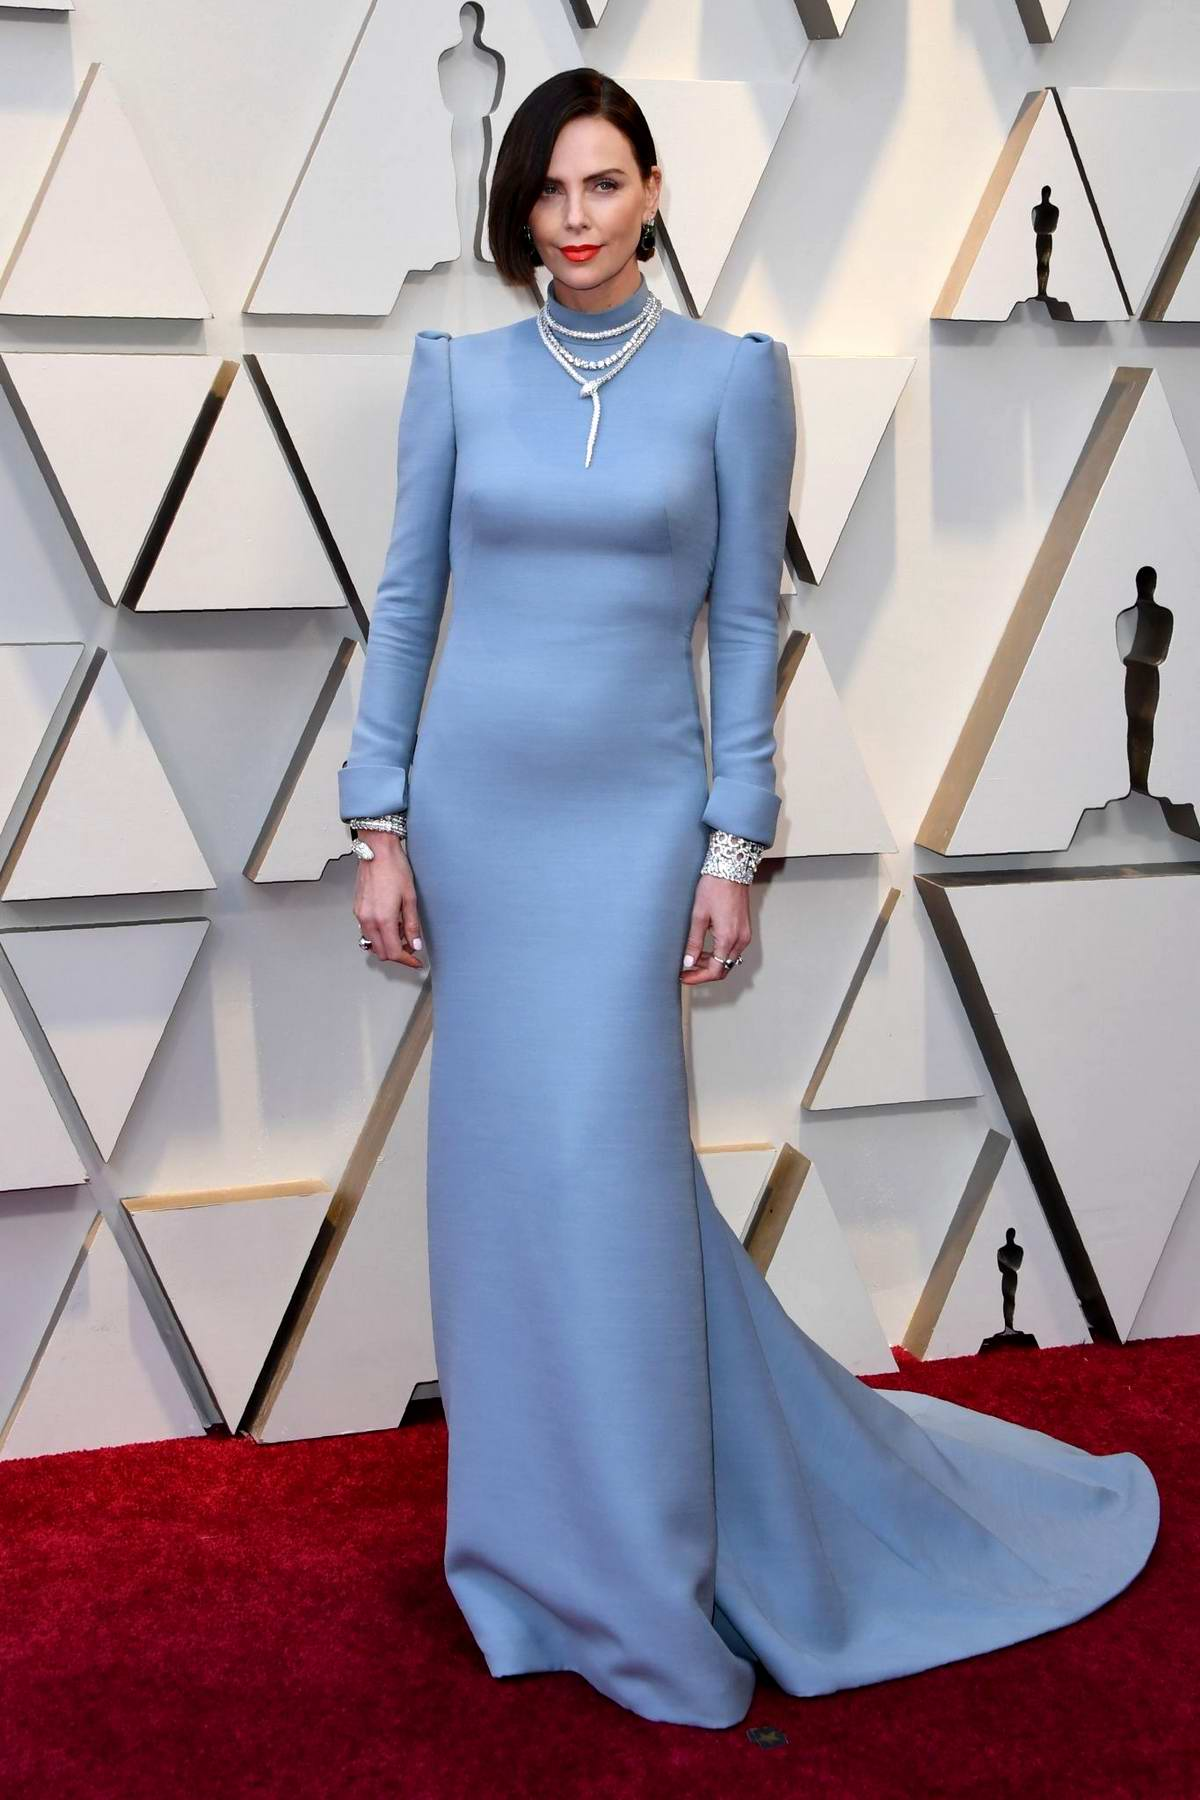 Charlize Theron attends the 91st Annual Academy Awards (Oscars 2019) held at the Dolby Theatre in Hollywood, California